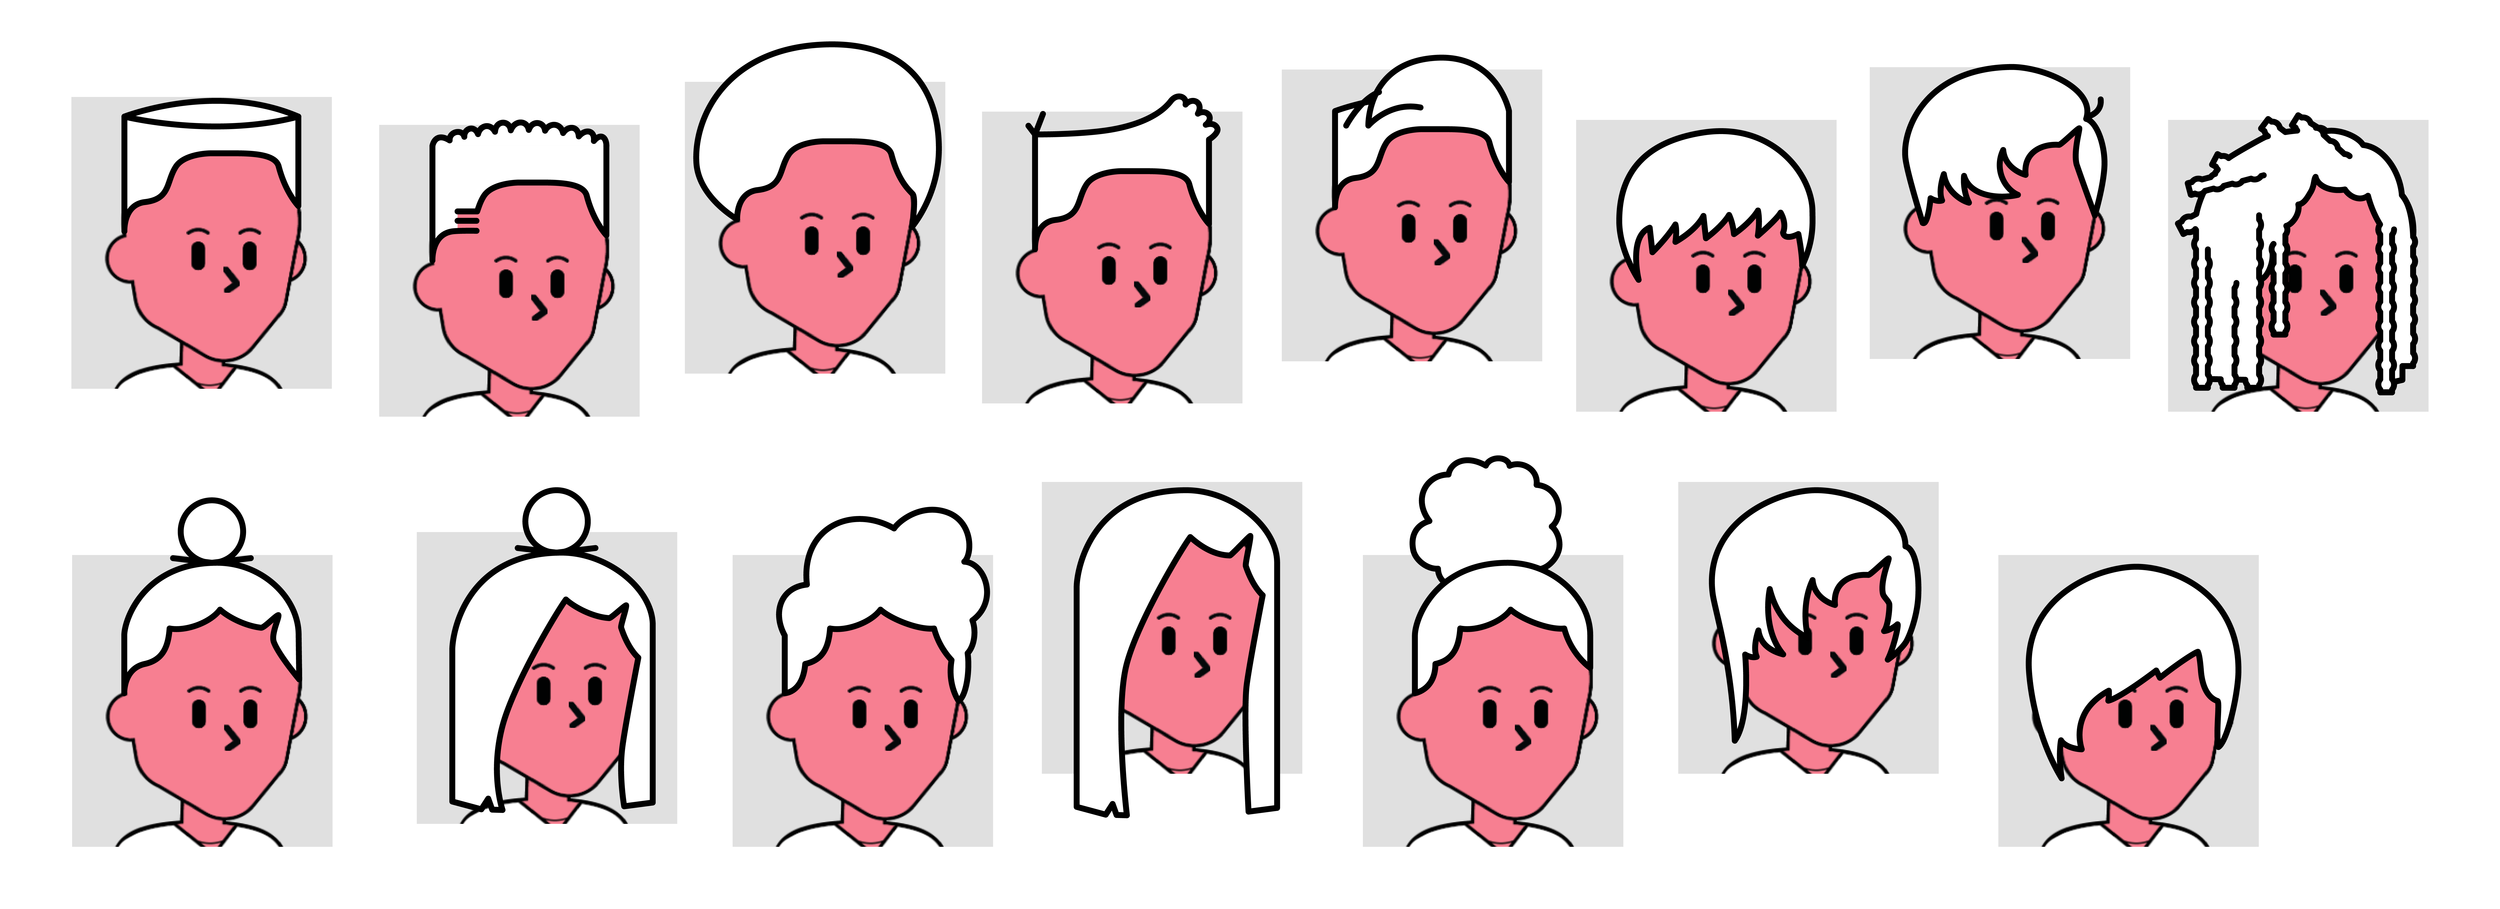 Snap_Insights_ForDisplay_190329_Hairstyles.png